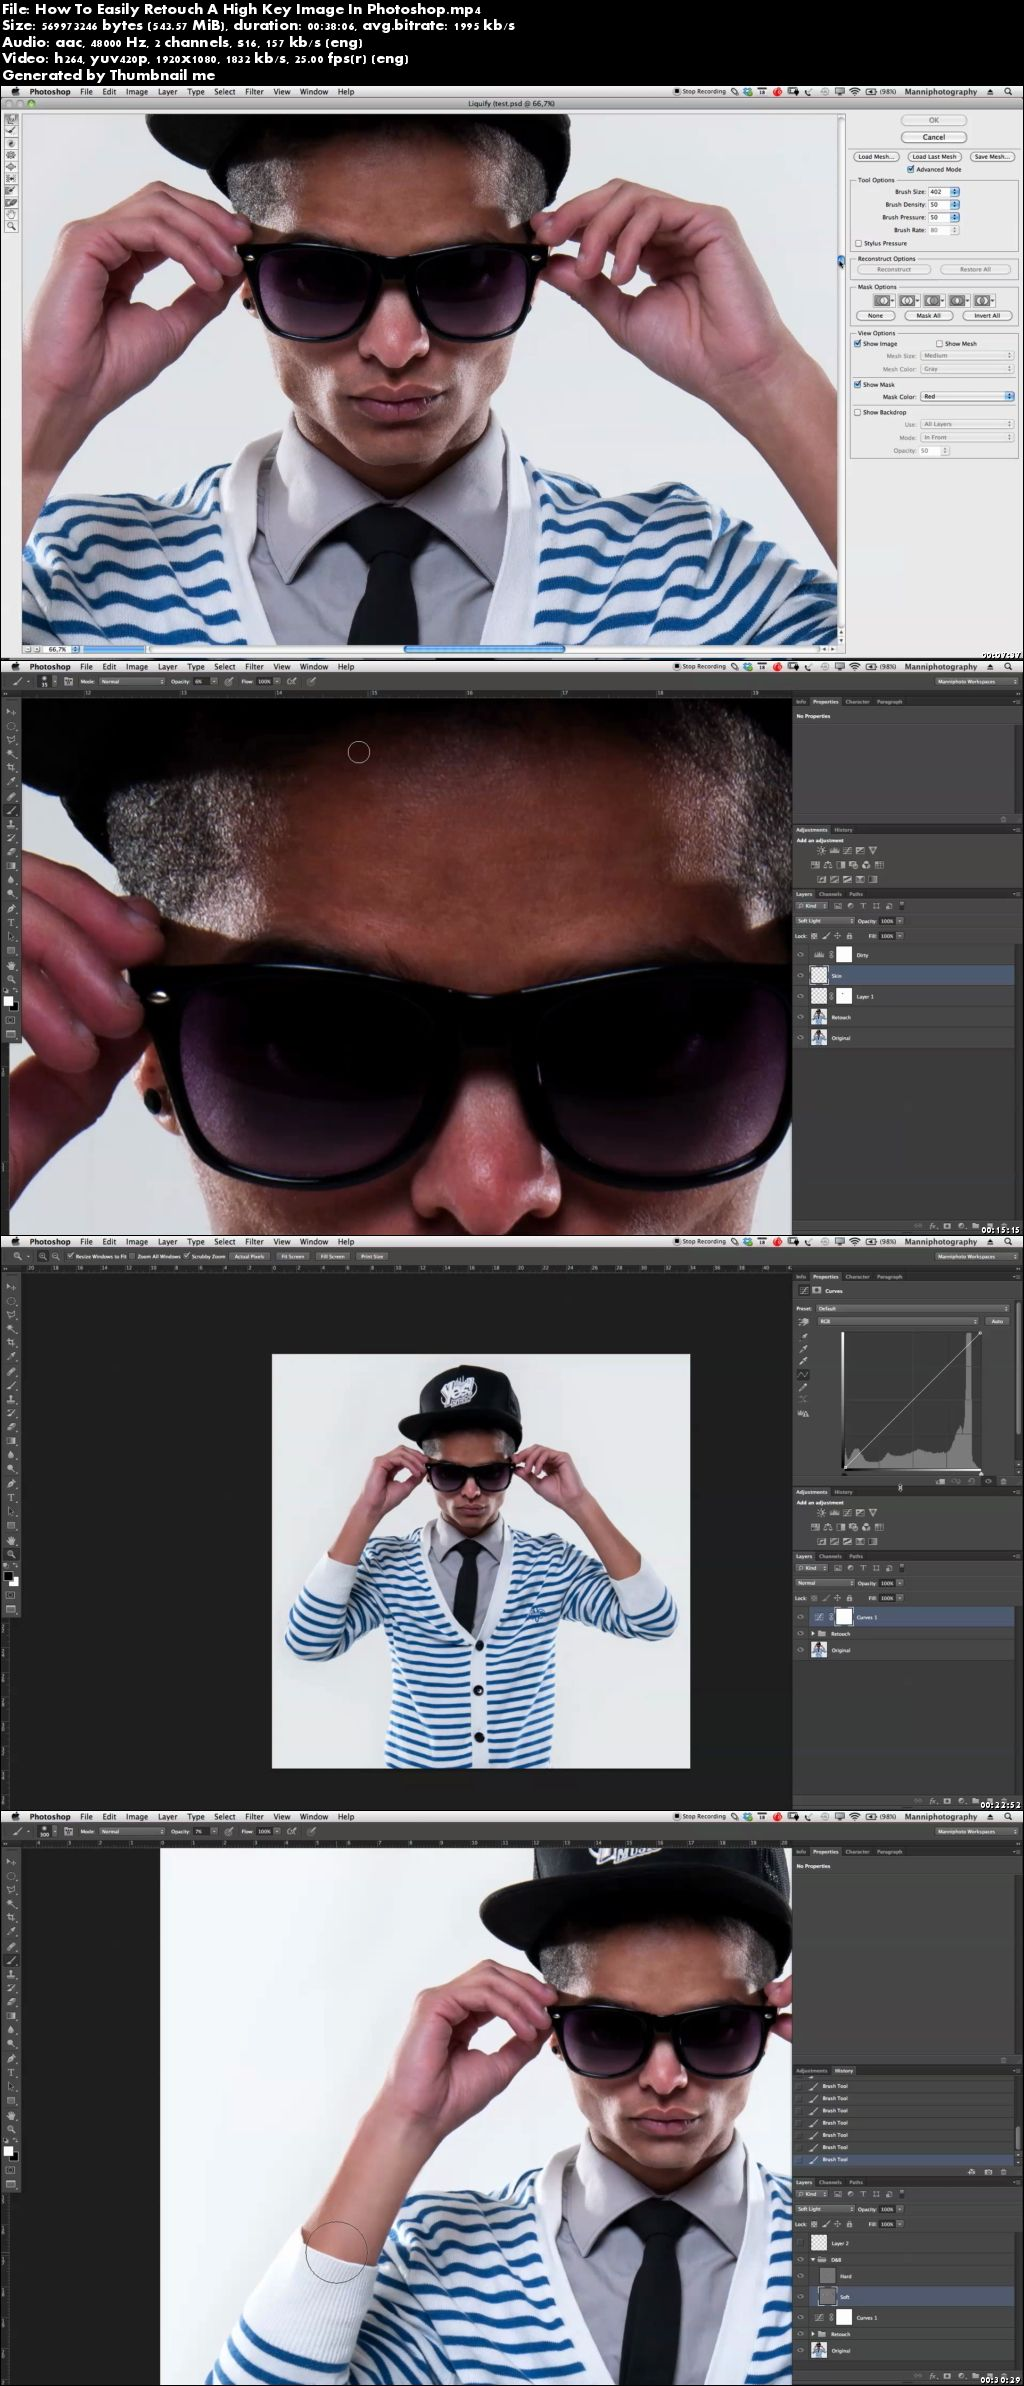 How To Easily Retouch A High Key Image In Photoshop